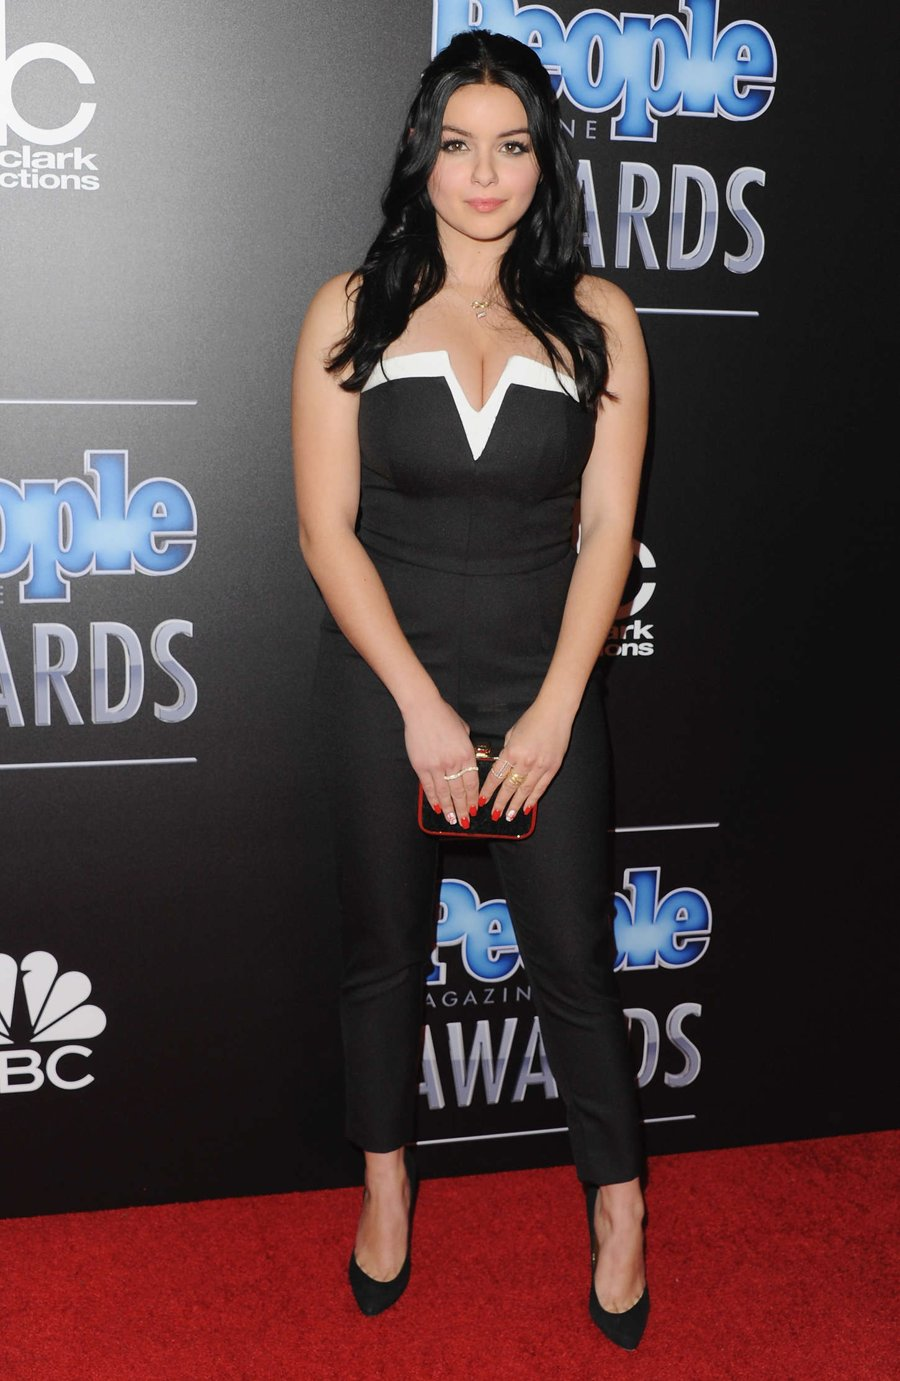 Ariel Winter - PEOPLE Magazine Awards